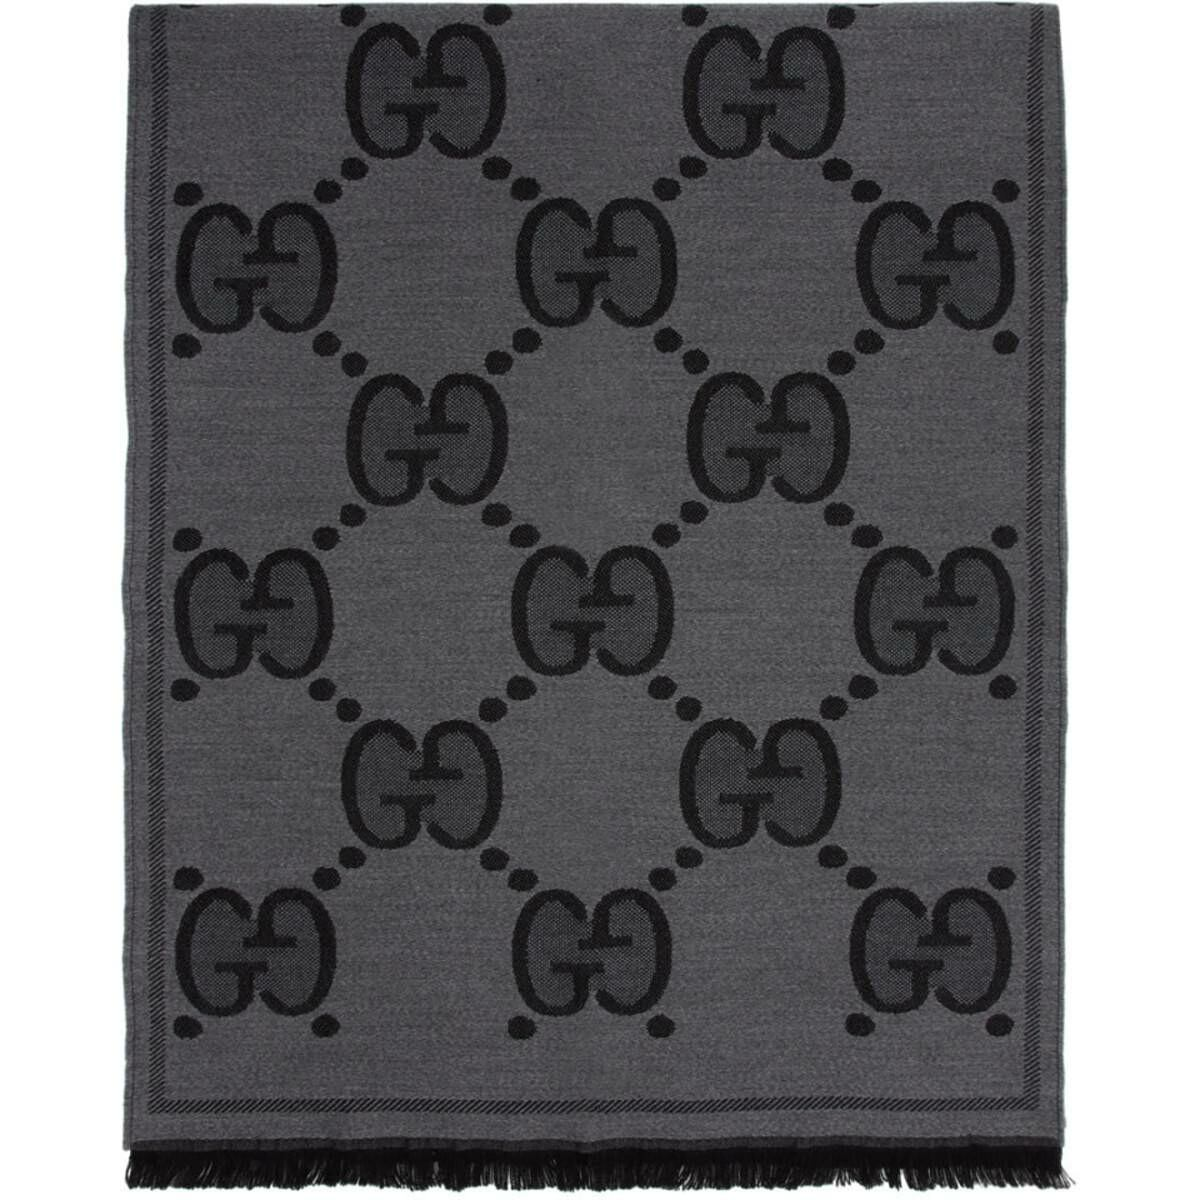 Gucci Black Wool GG Scarf Ssense USA MEN Men ACCESSORIES Mens SCARFS